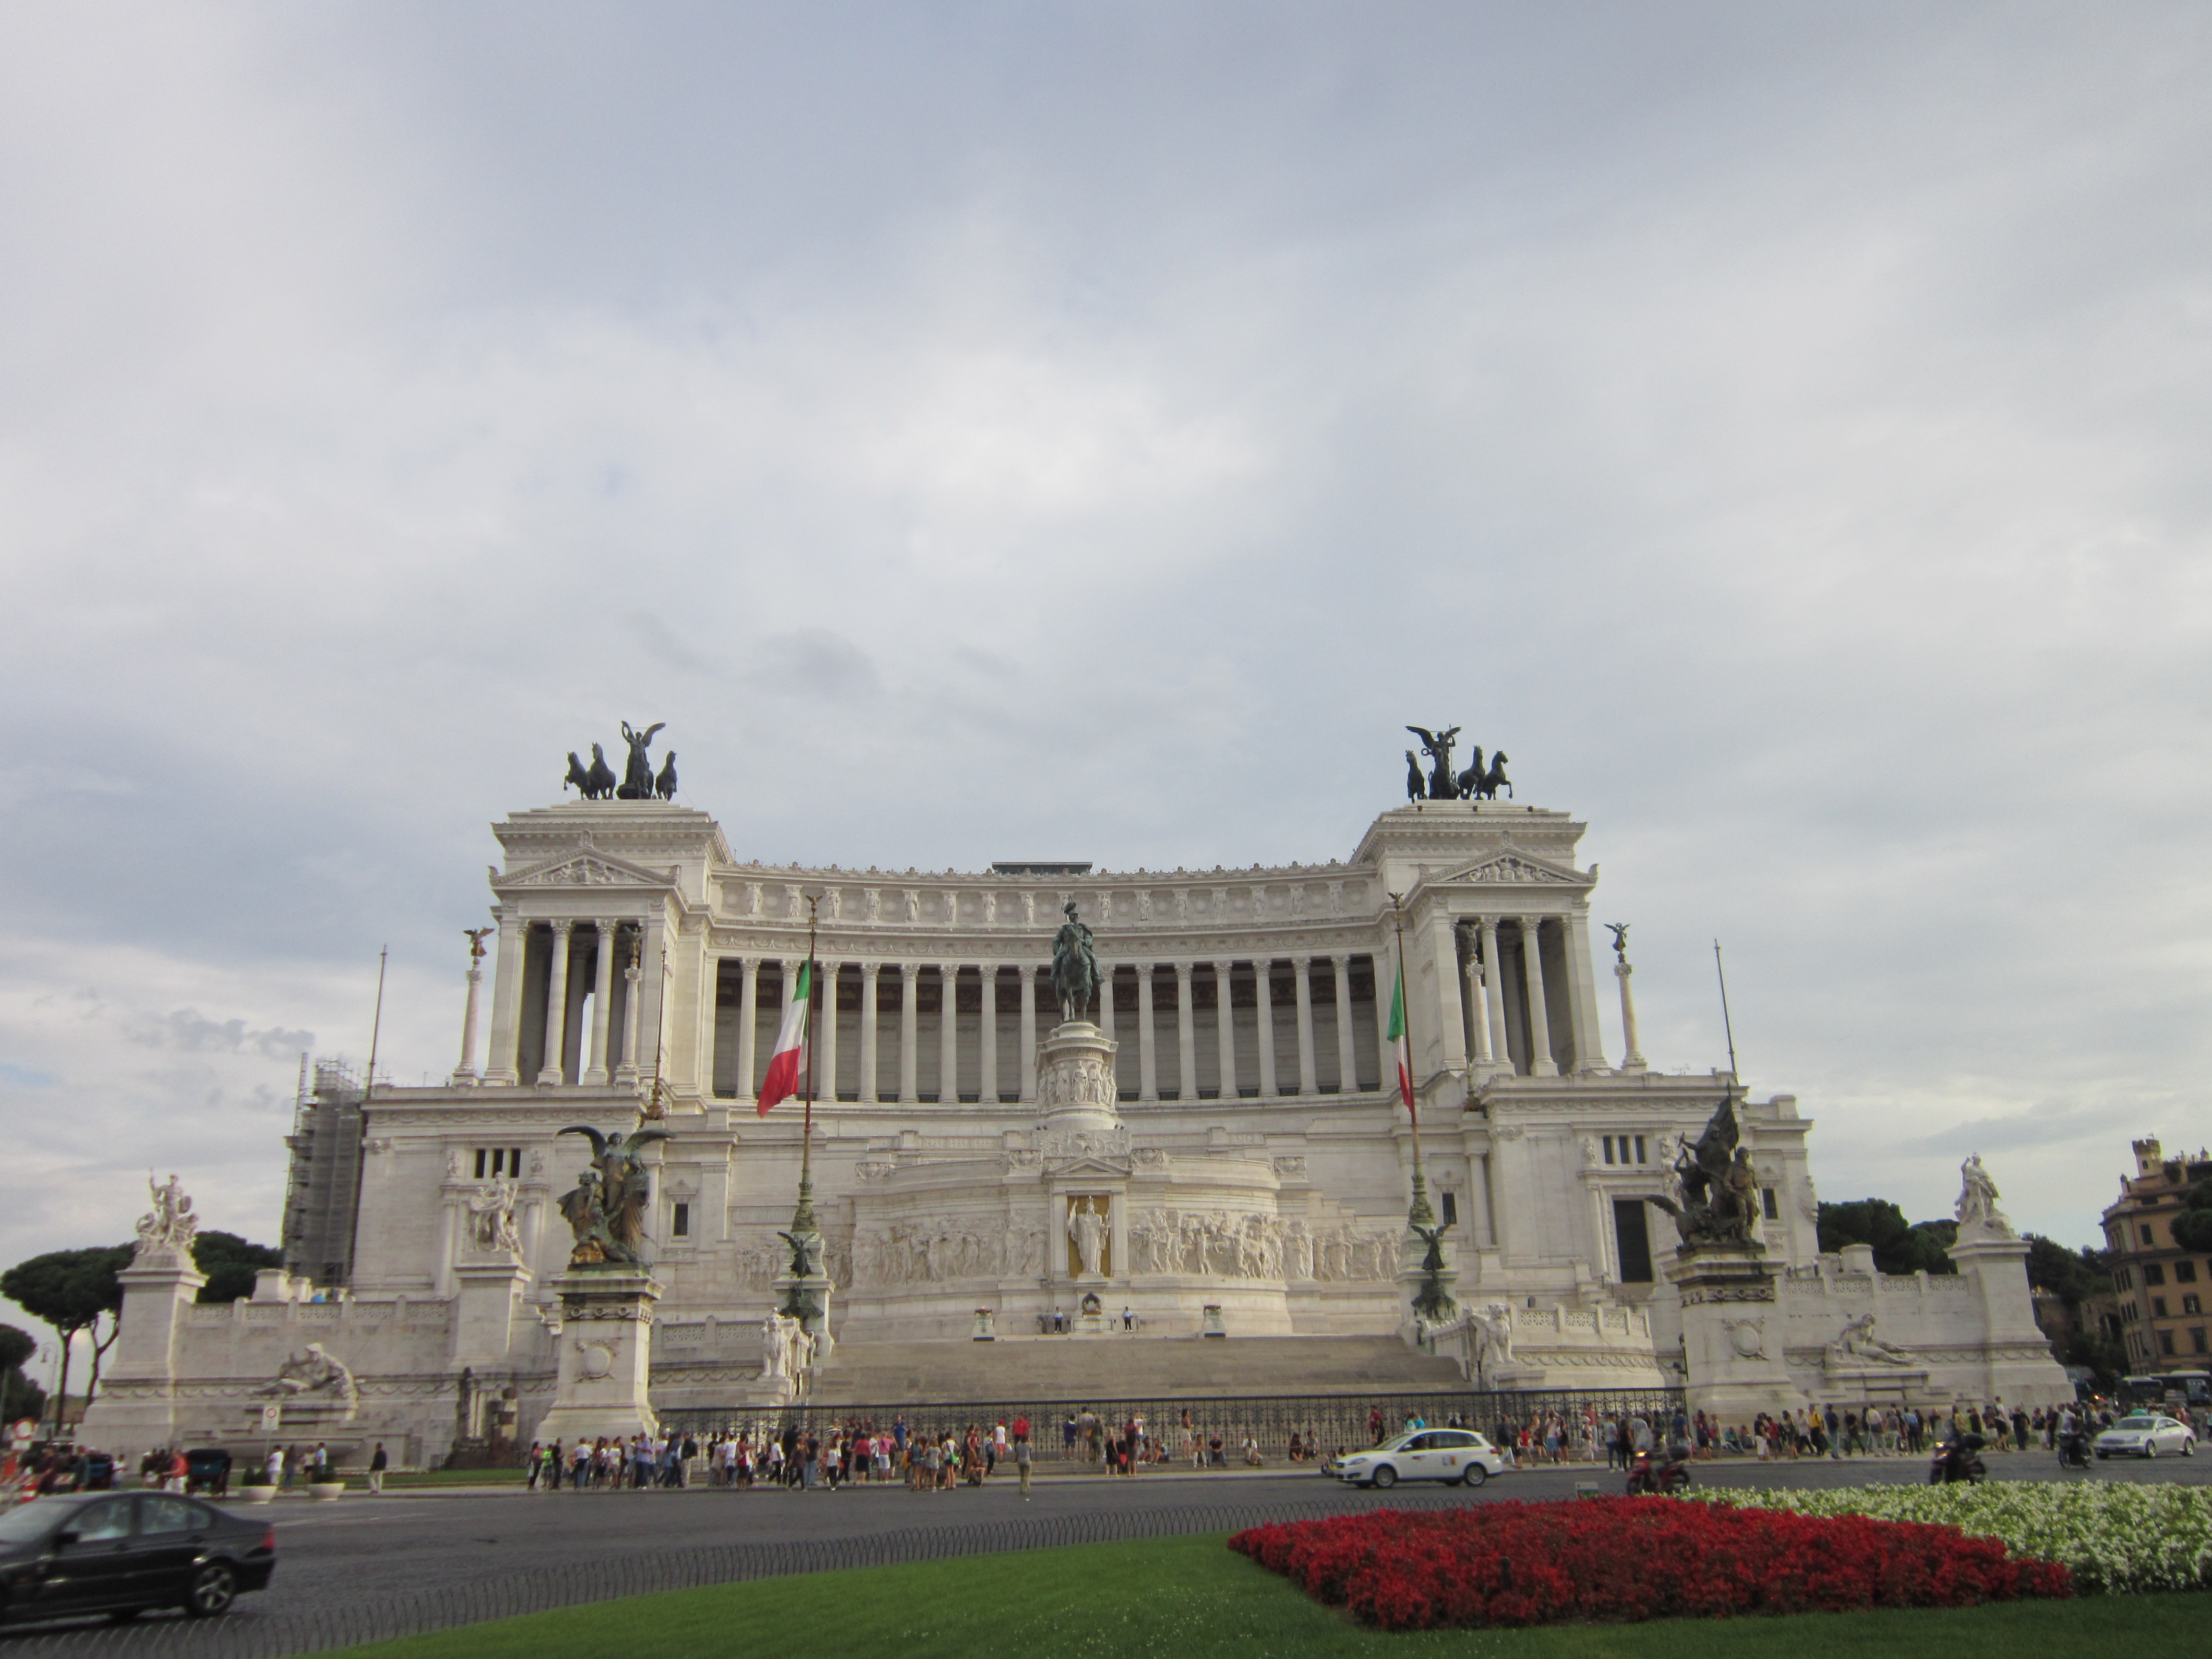 things to do in Rome - view of National Monument to Victor Emmanuel II